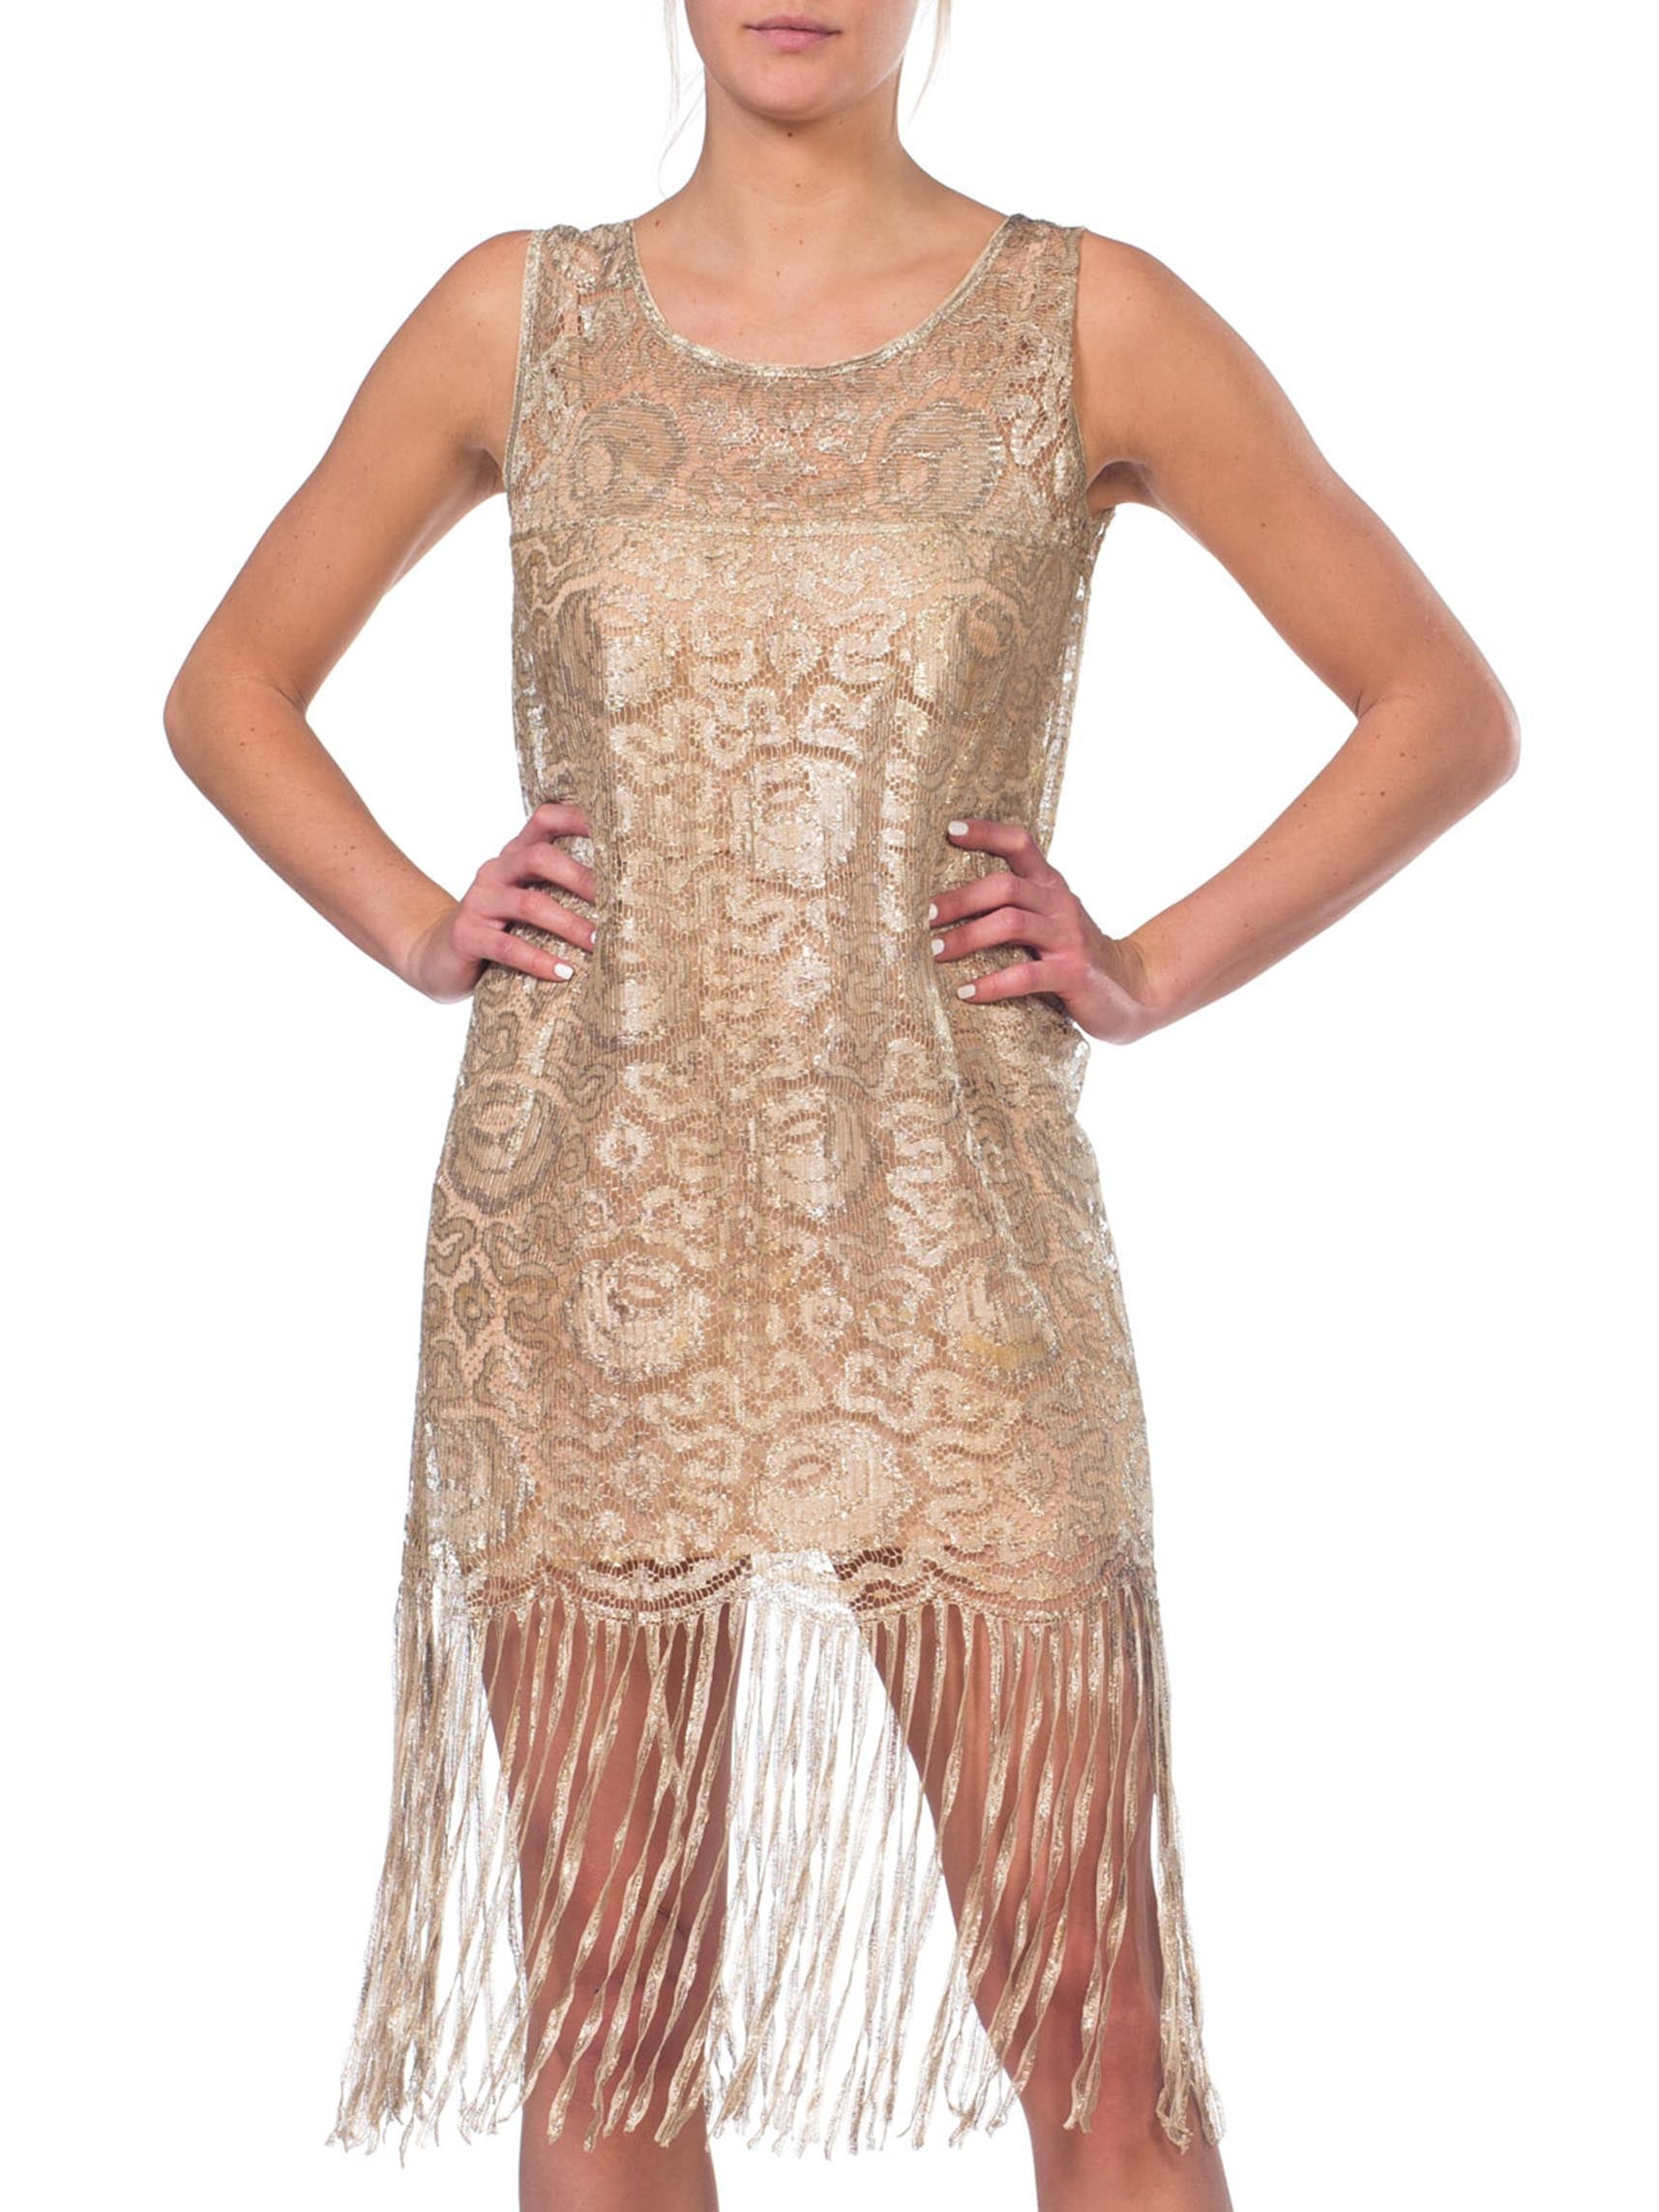 1920S Off White Silver Lamé Lace Art Deco Floral & Fringe Flapper Cocktail Dress